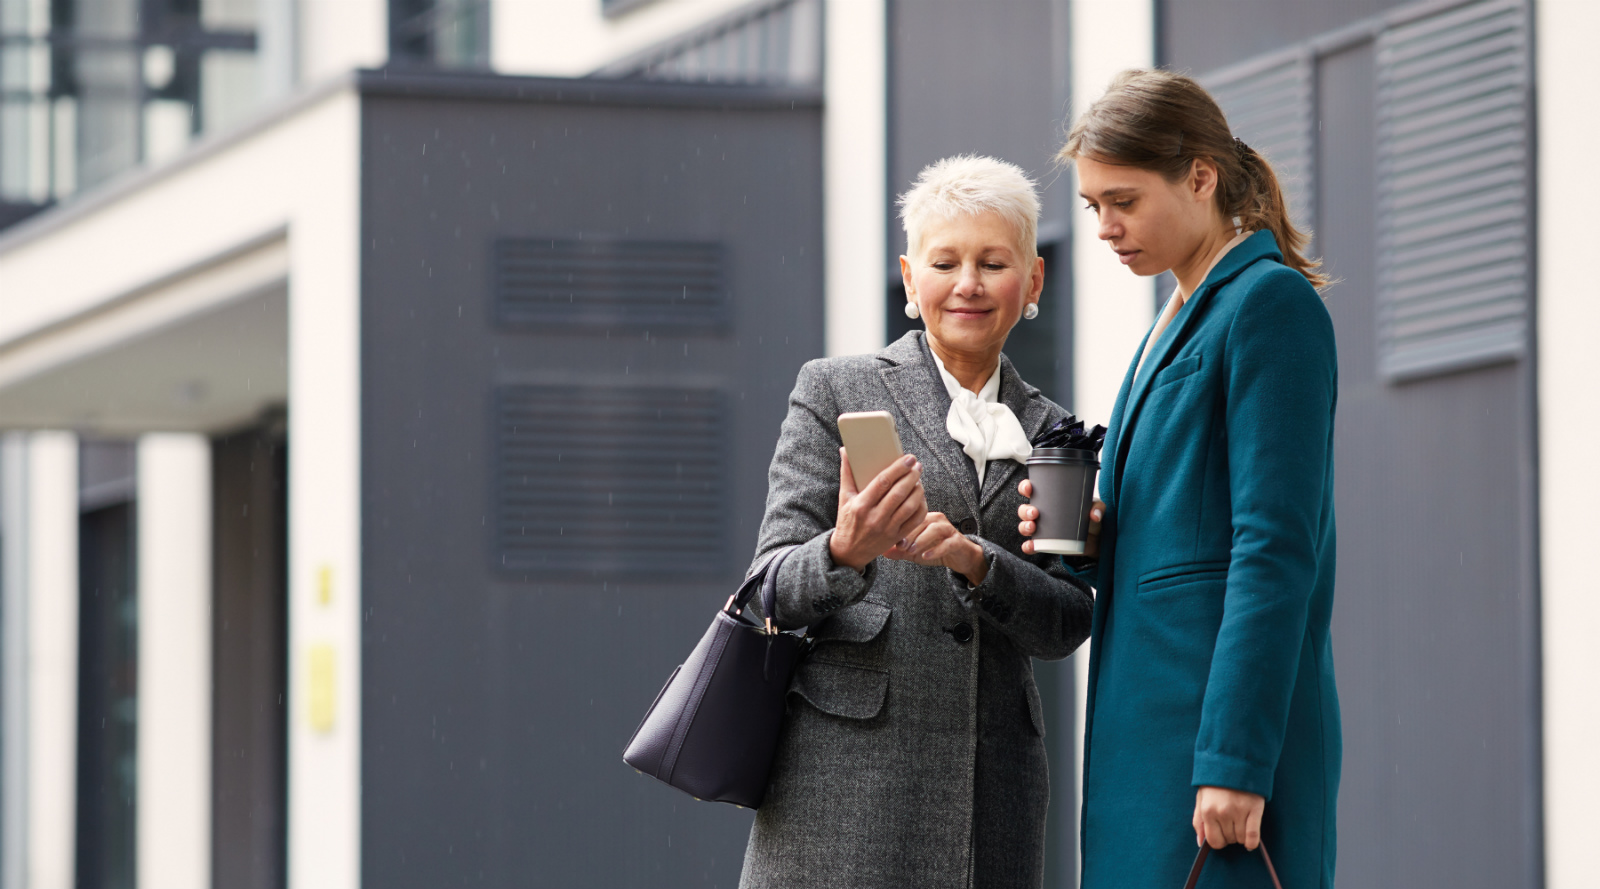 Two women looking a smart phone